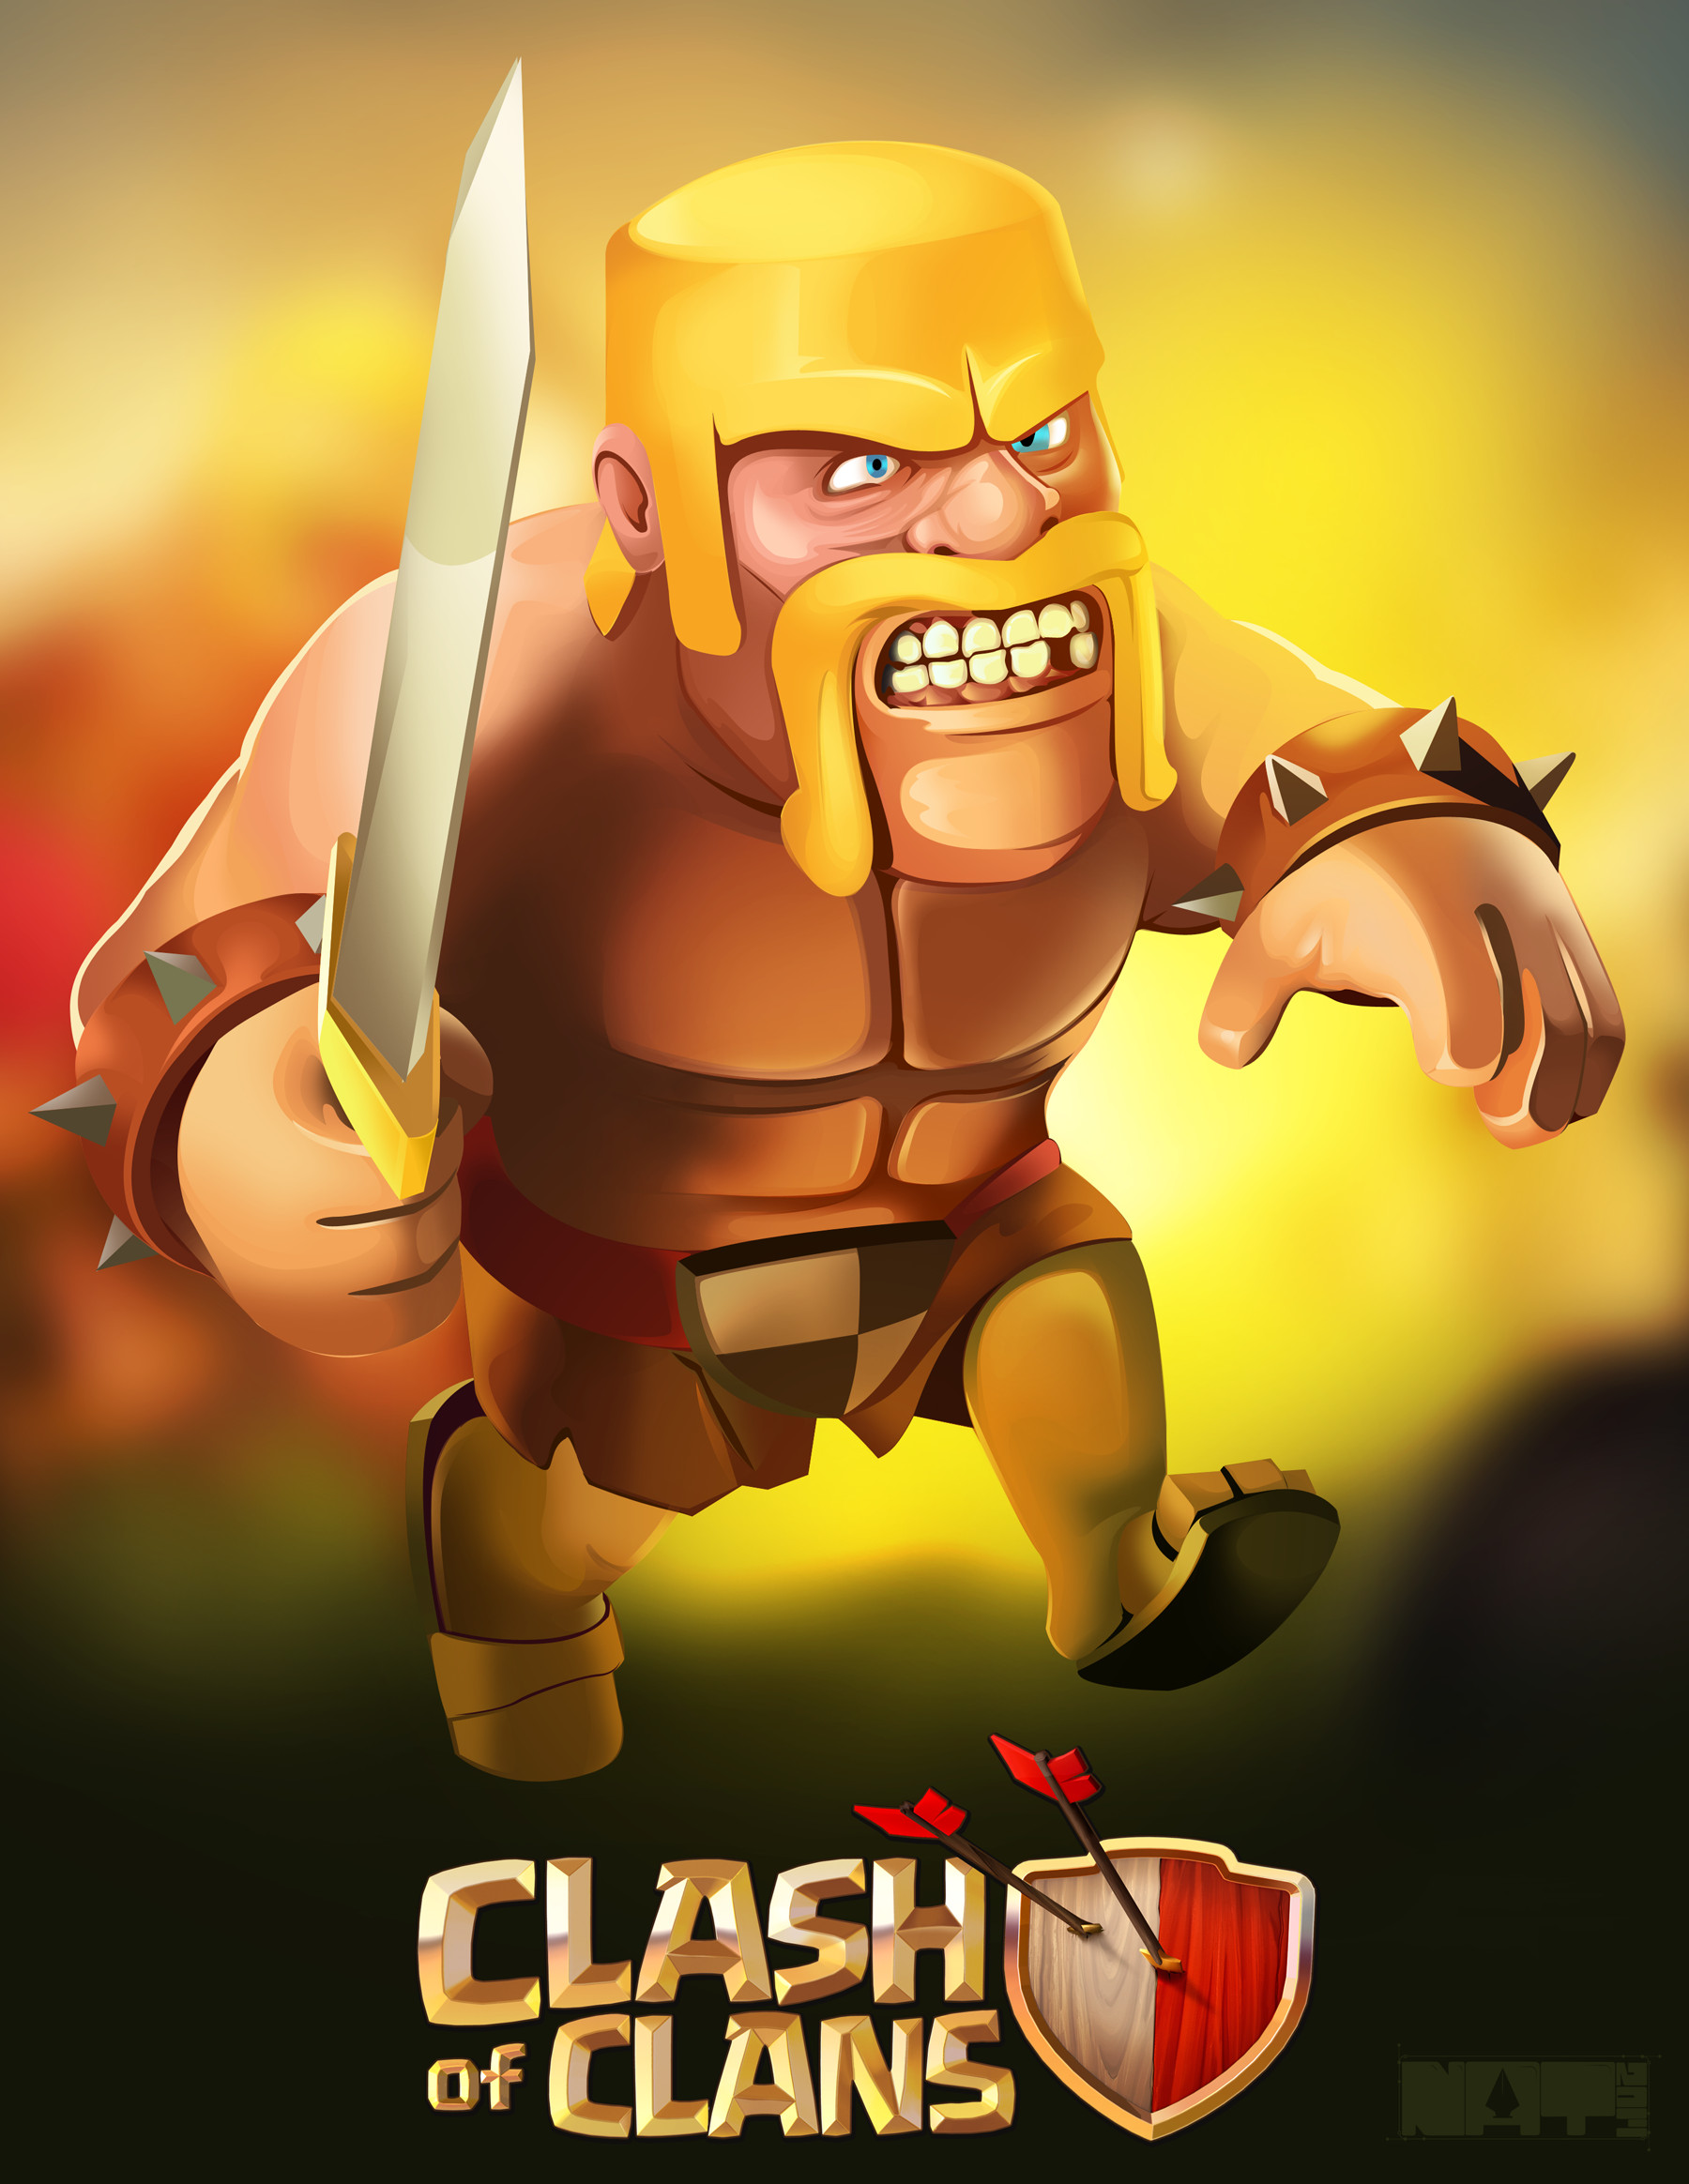 Wallpapers Coc Posted By Ryan Sellers